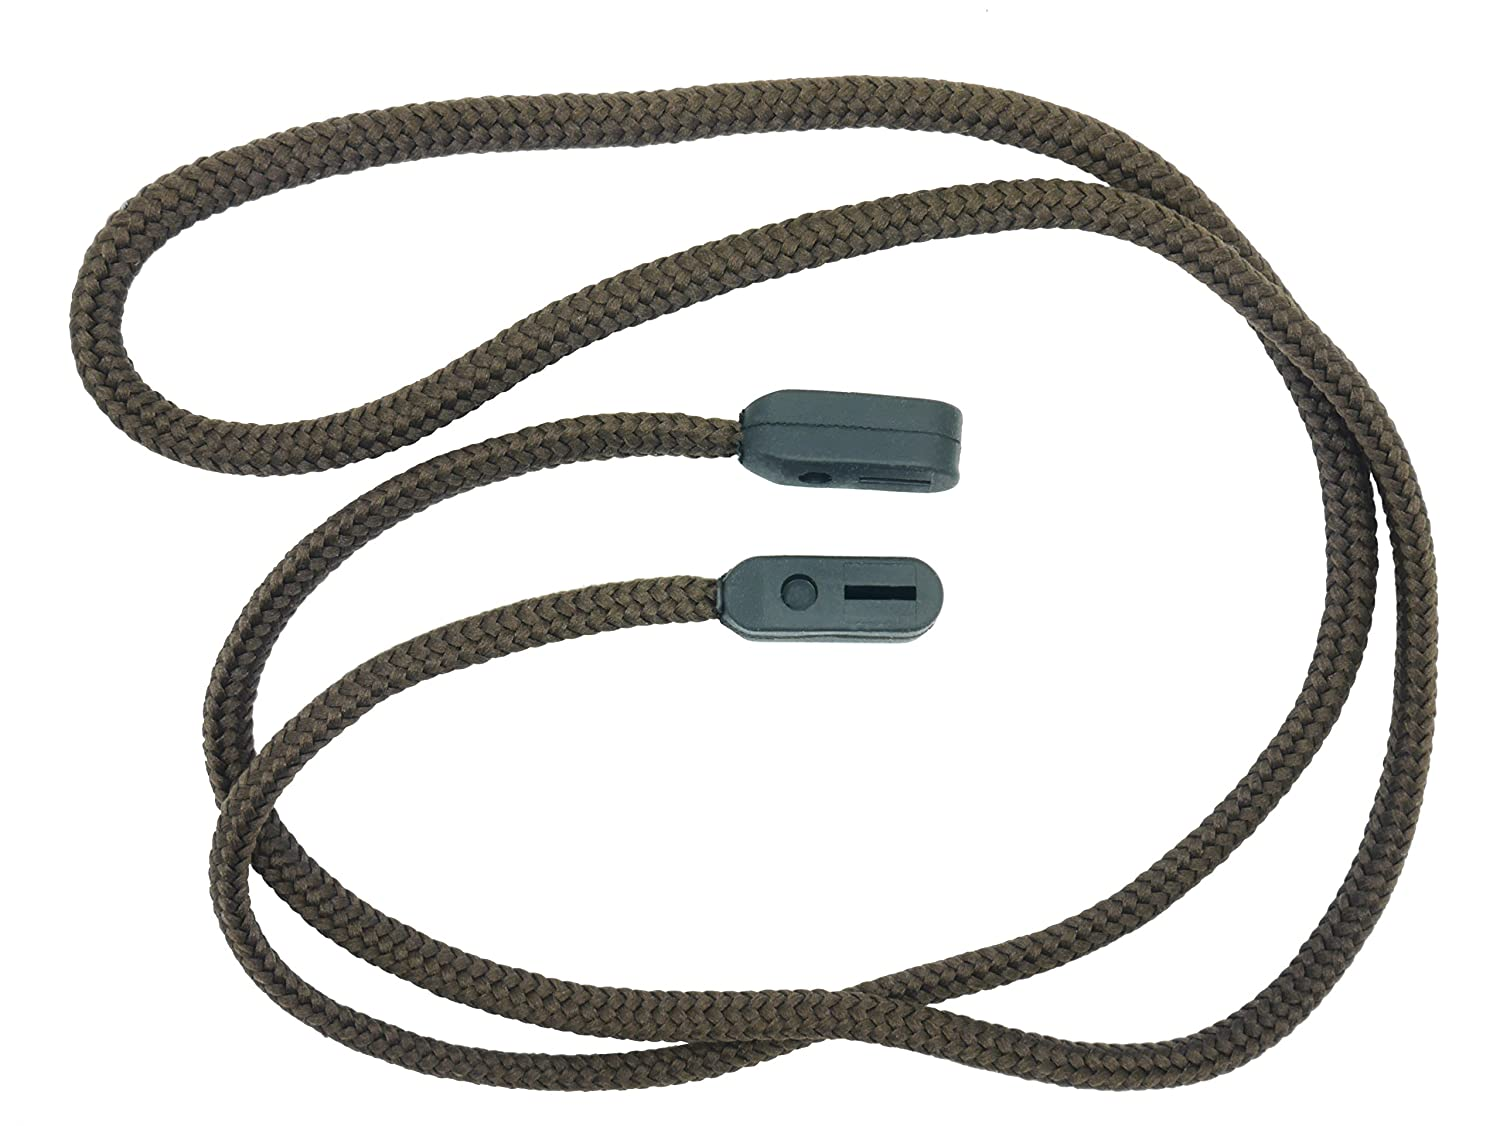 2b0d7bc3550 GoGrip Secure Glasses Cord - Spectacle Cord   Spec Lanyard - Brown   Amazon.co.uk  Clothing